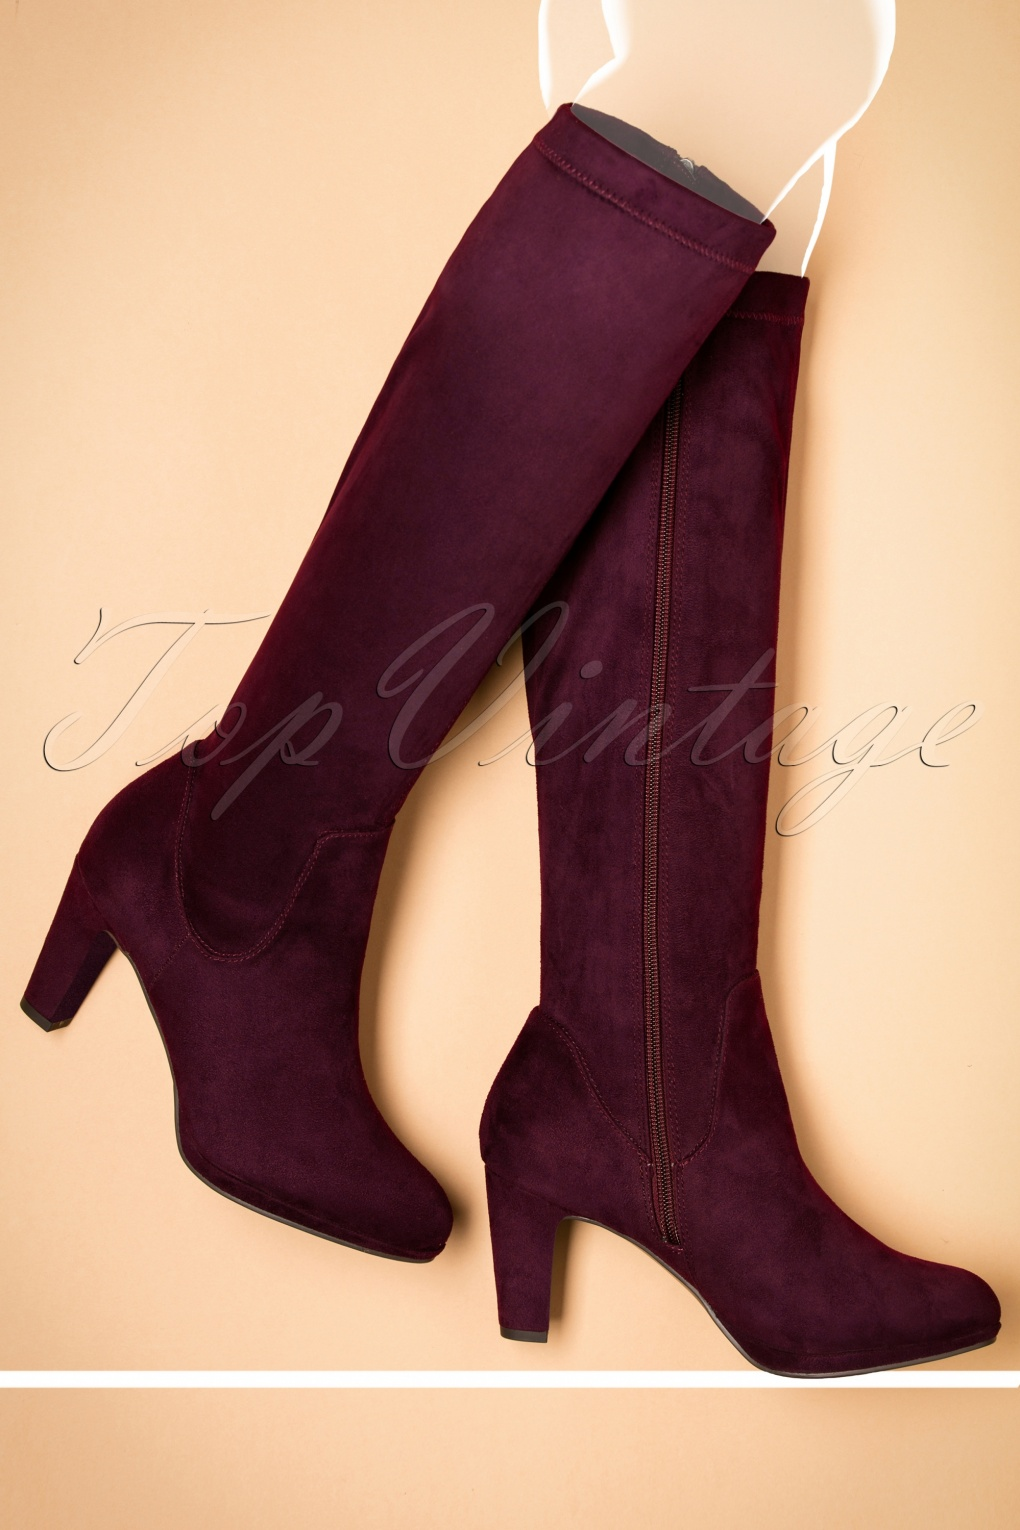 1960s Inspired Fashion: Recreate the Look 70s Priscilla High Suedine Boots in Merlot £61.73 AT vintagedancer.com